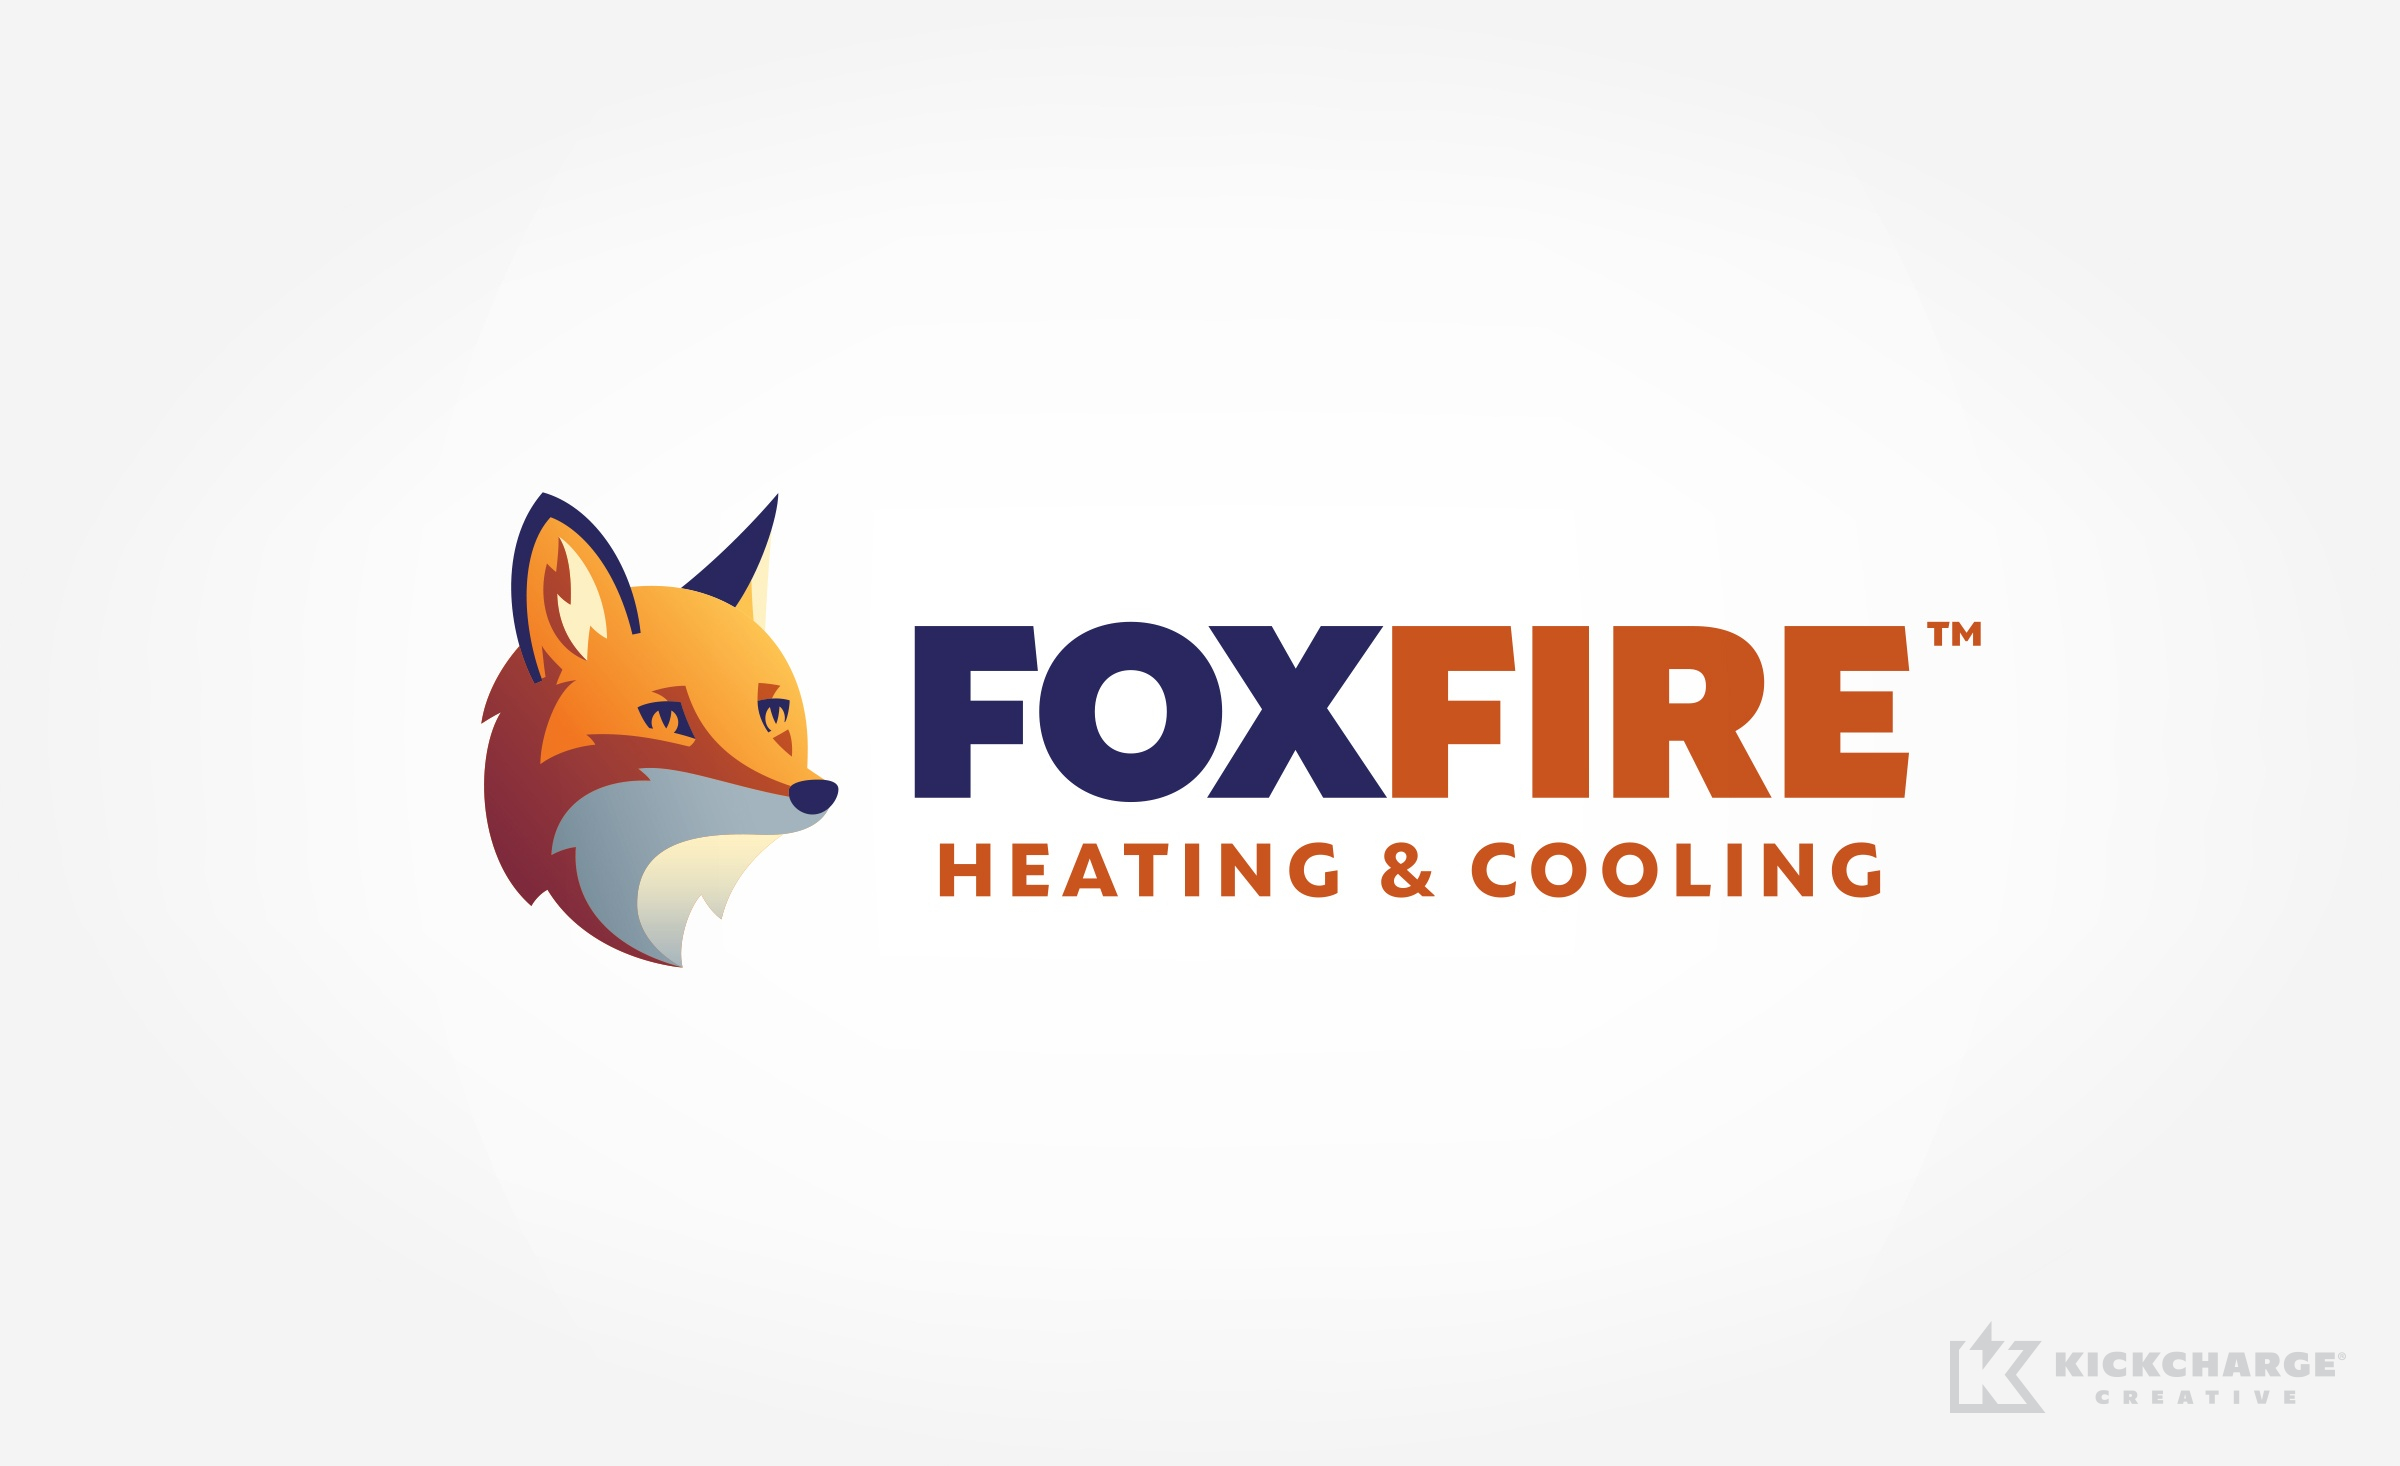 FoxFire Heating & Cooling